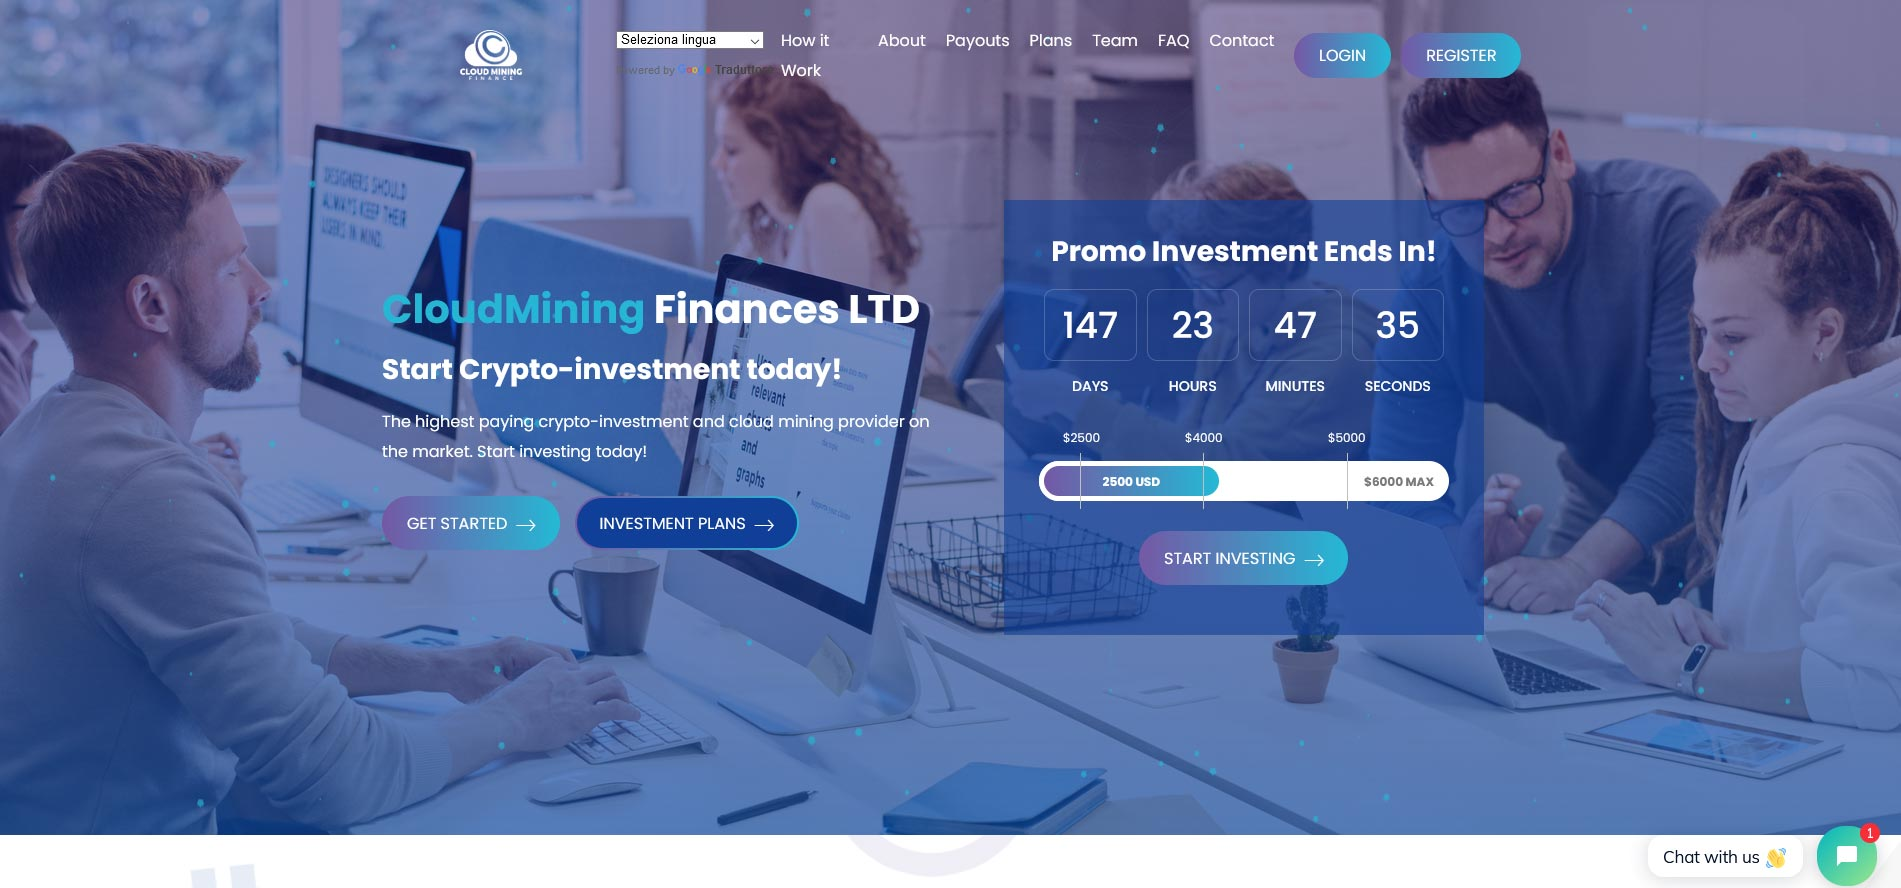 cloud mining finances ltd review